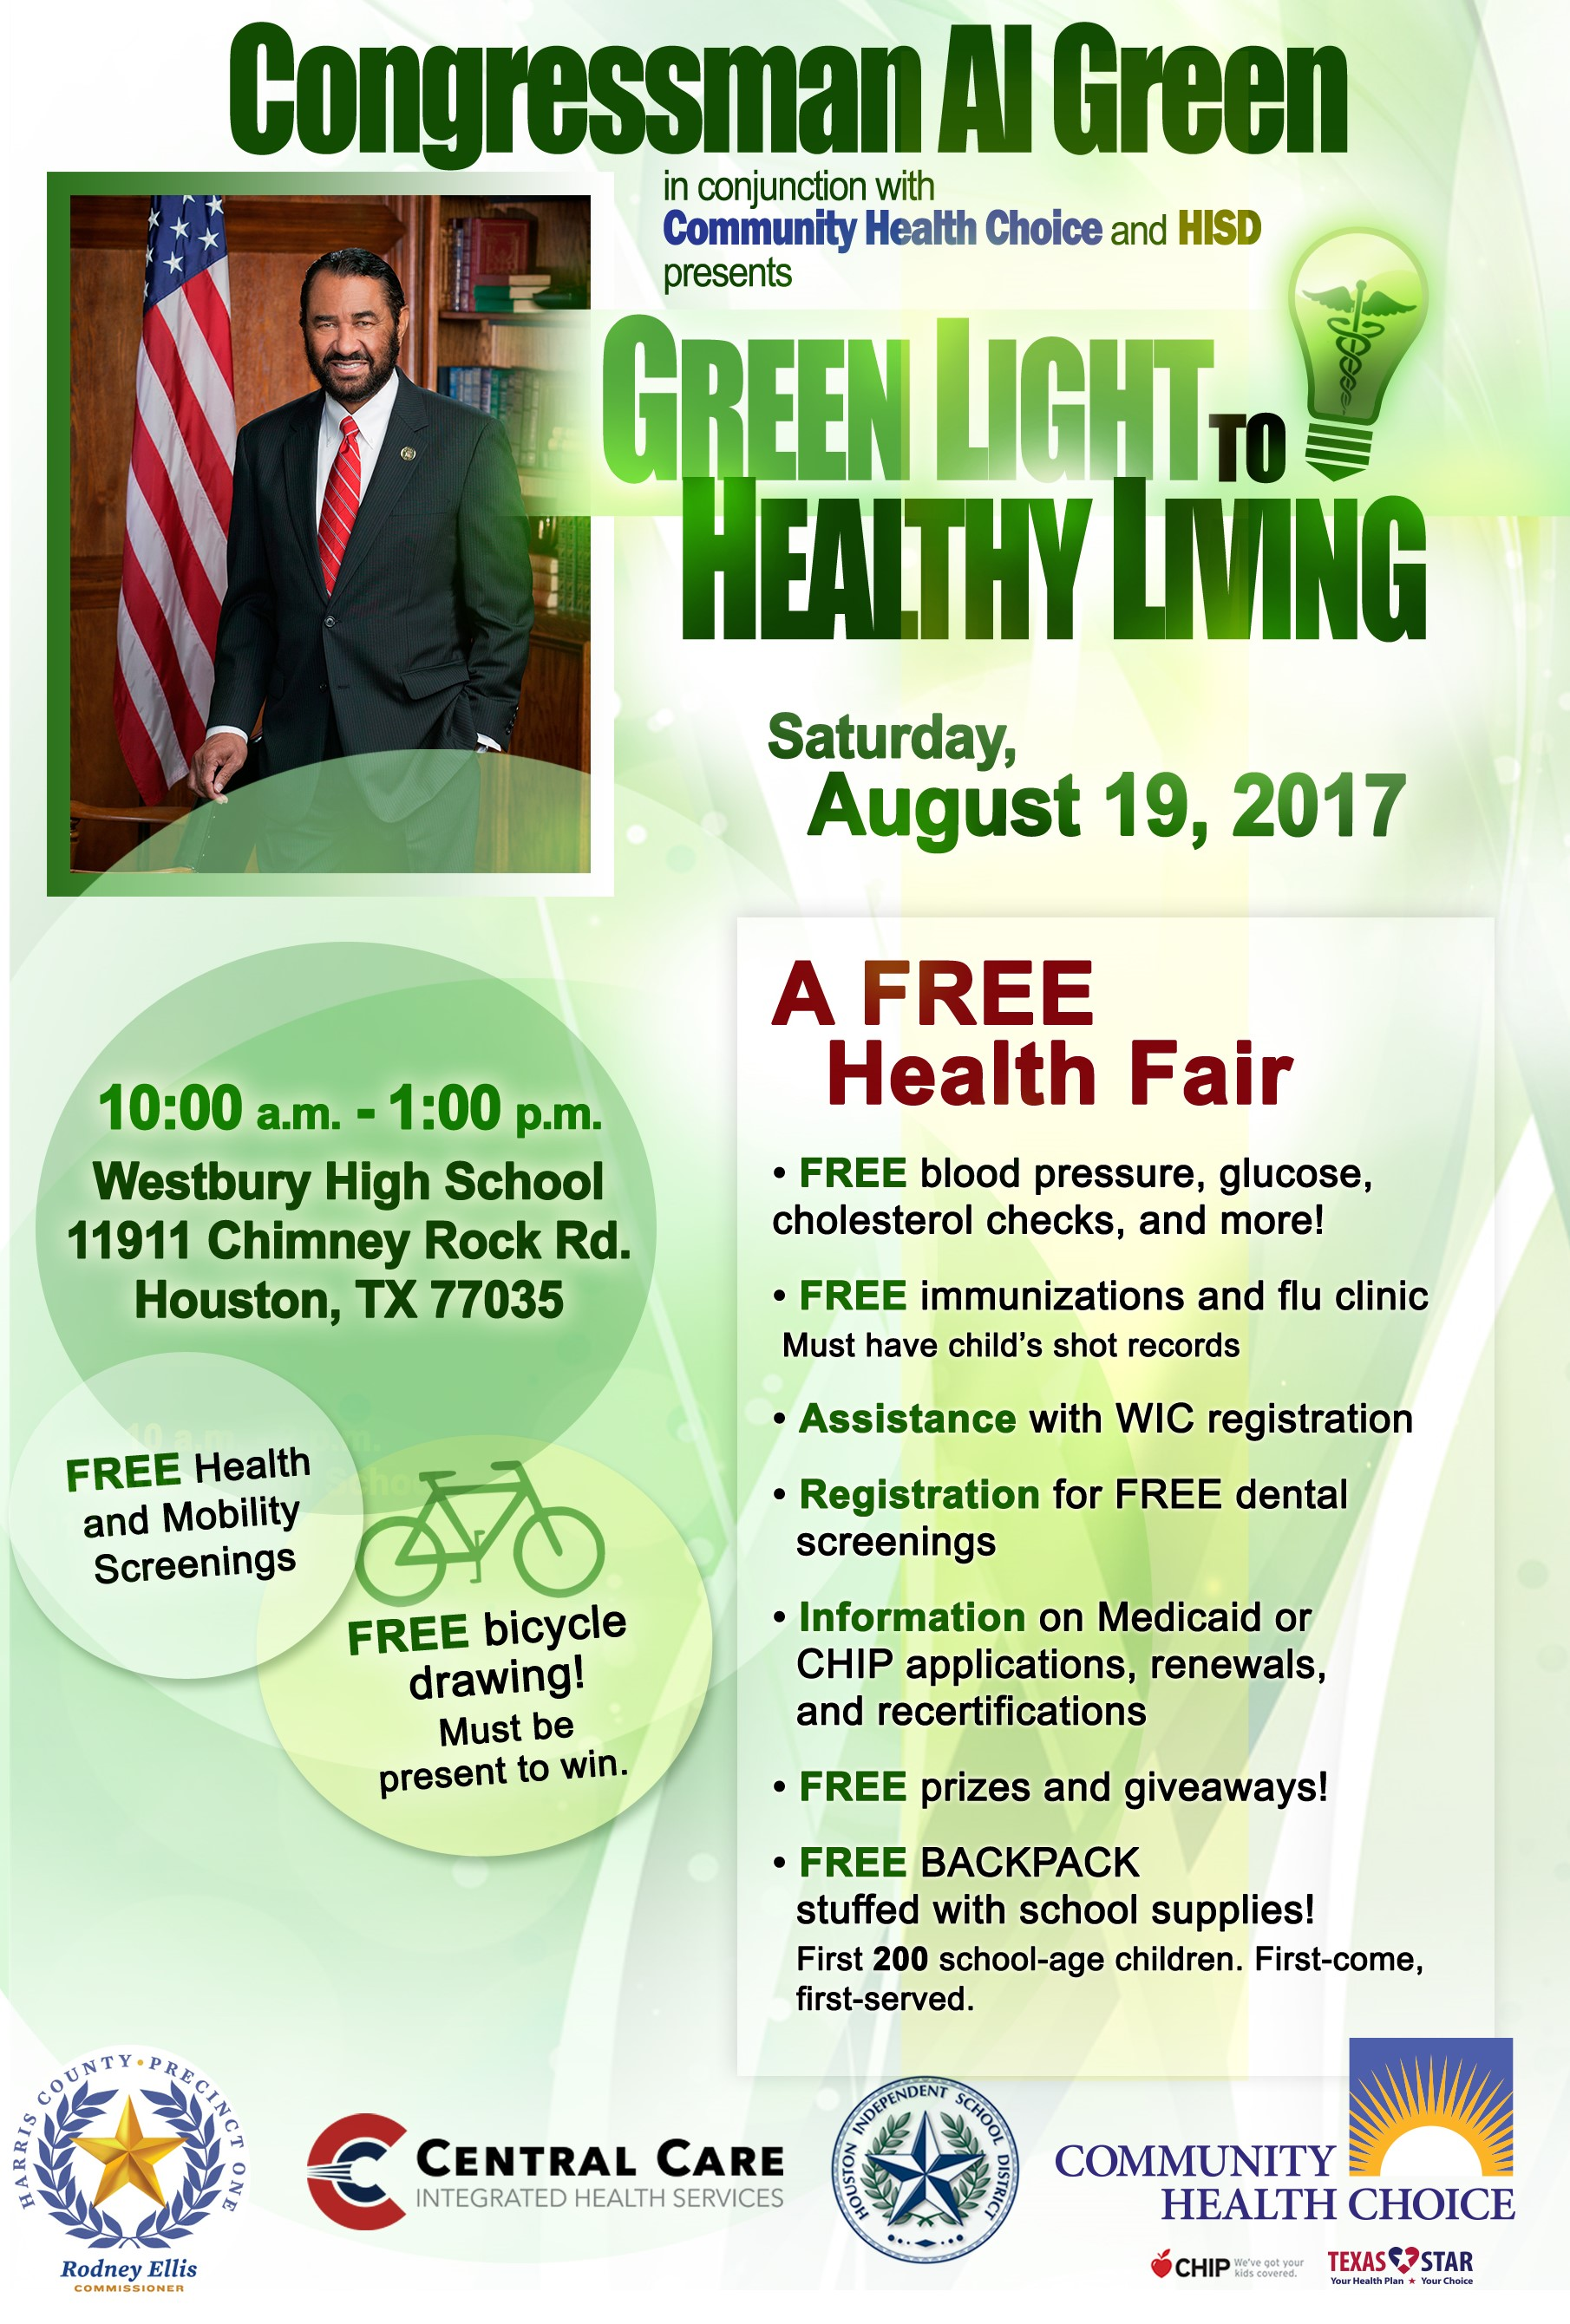 2017 Congressman Al Green Free Health Fair